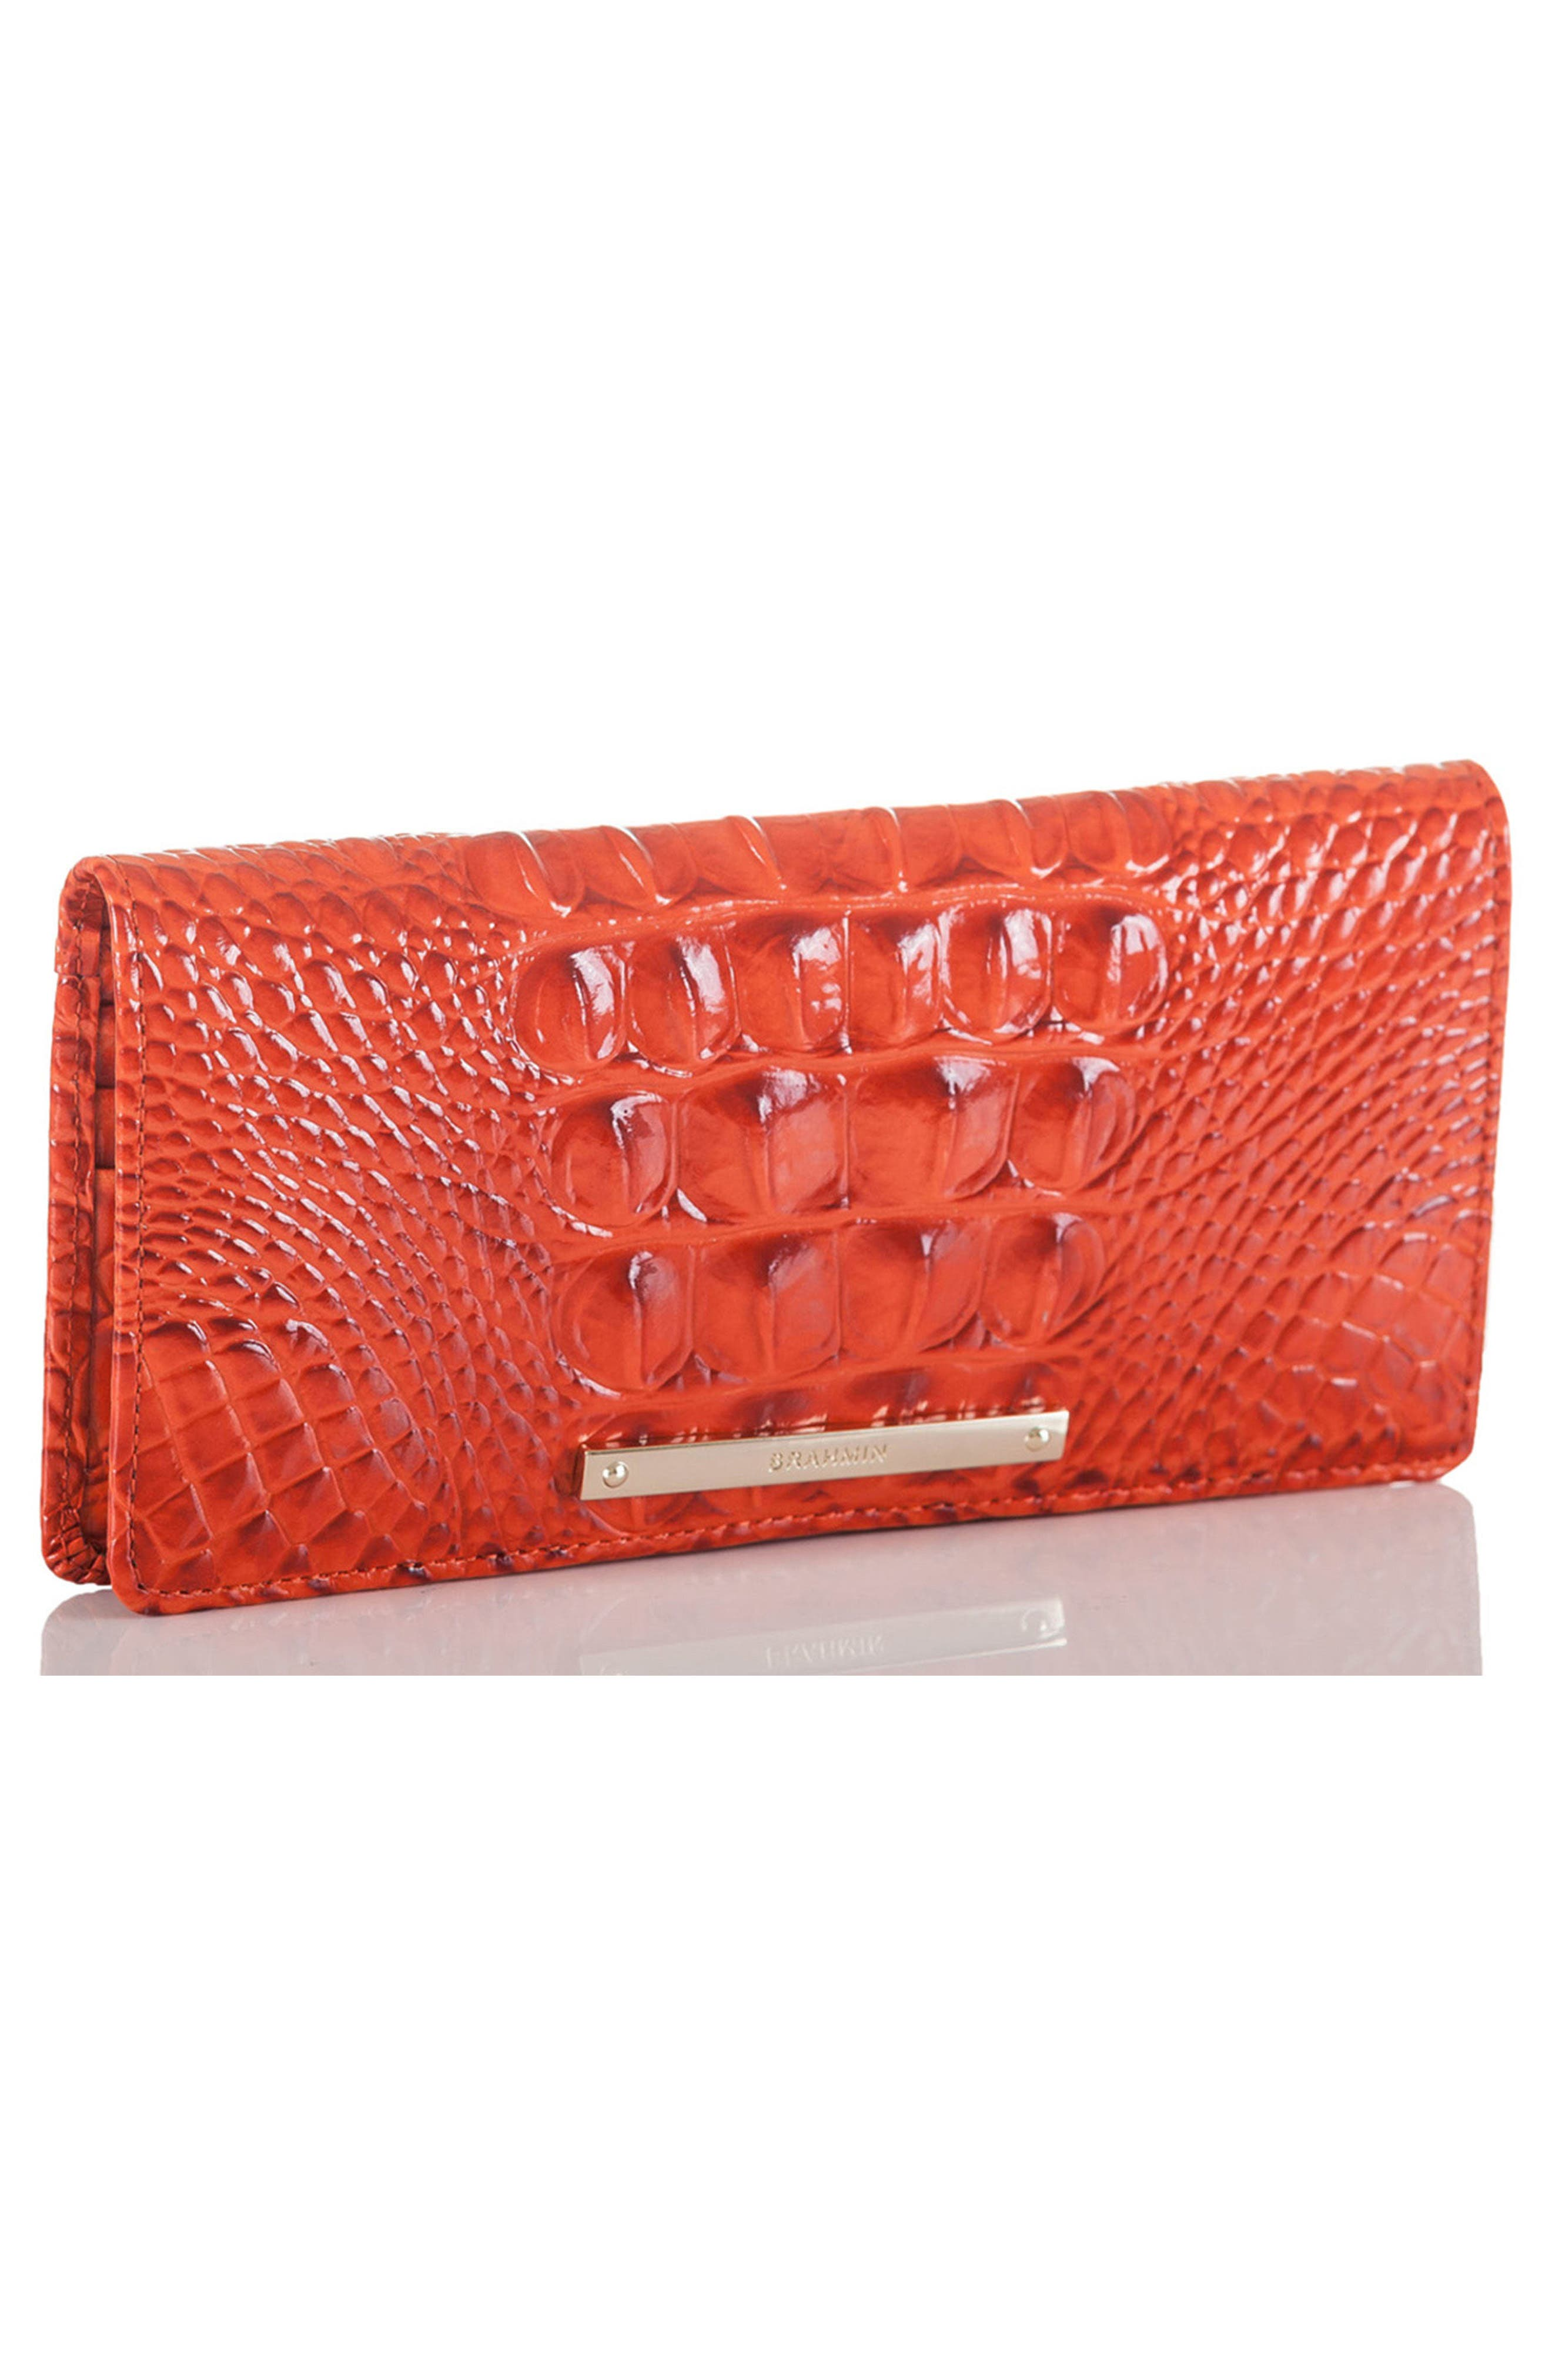 'Ady' Croc Embossed Continental Wallet,                             Alternate thumbnail 4, color,                             Amaryllis